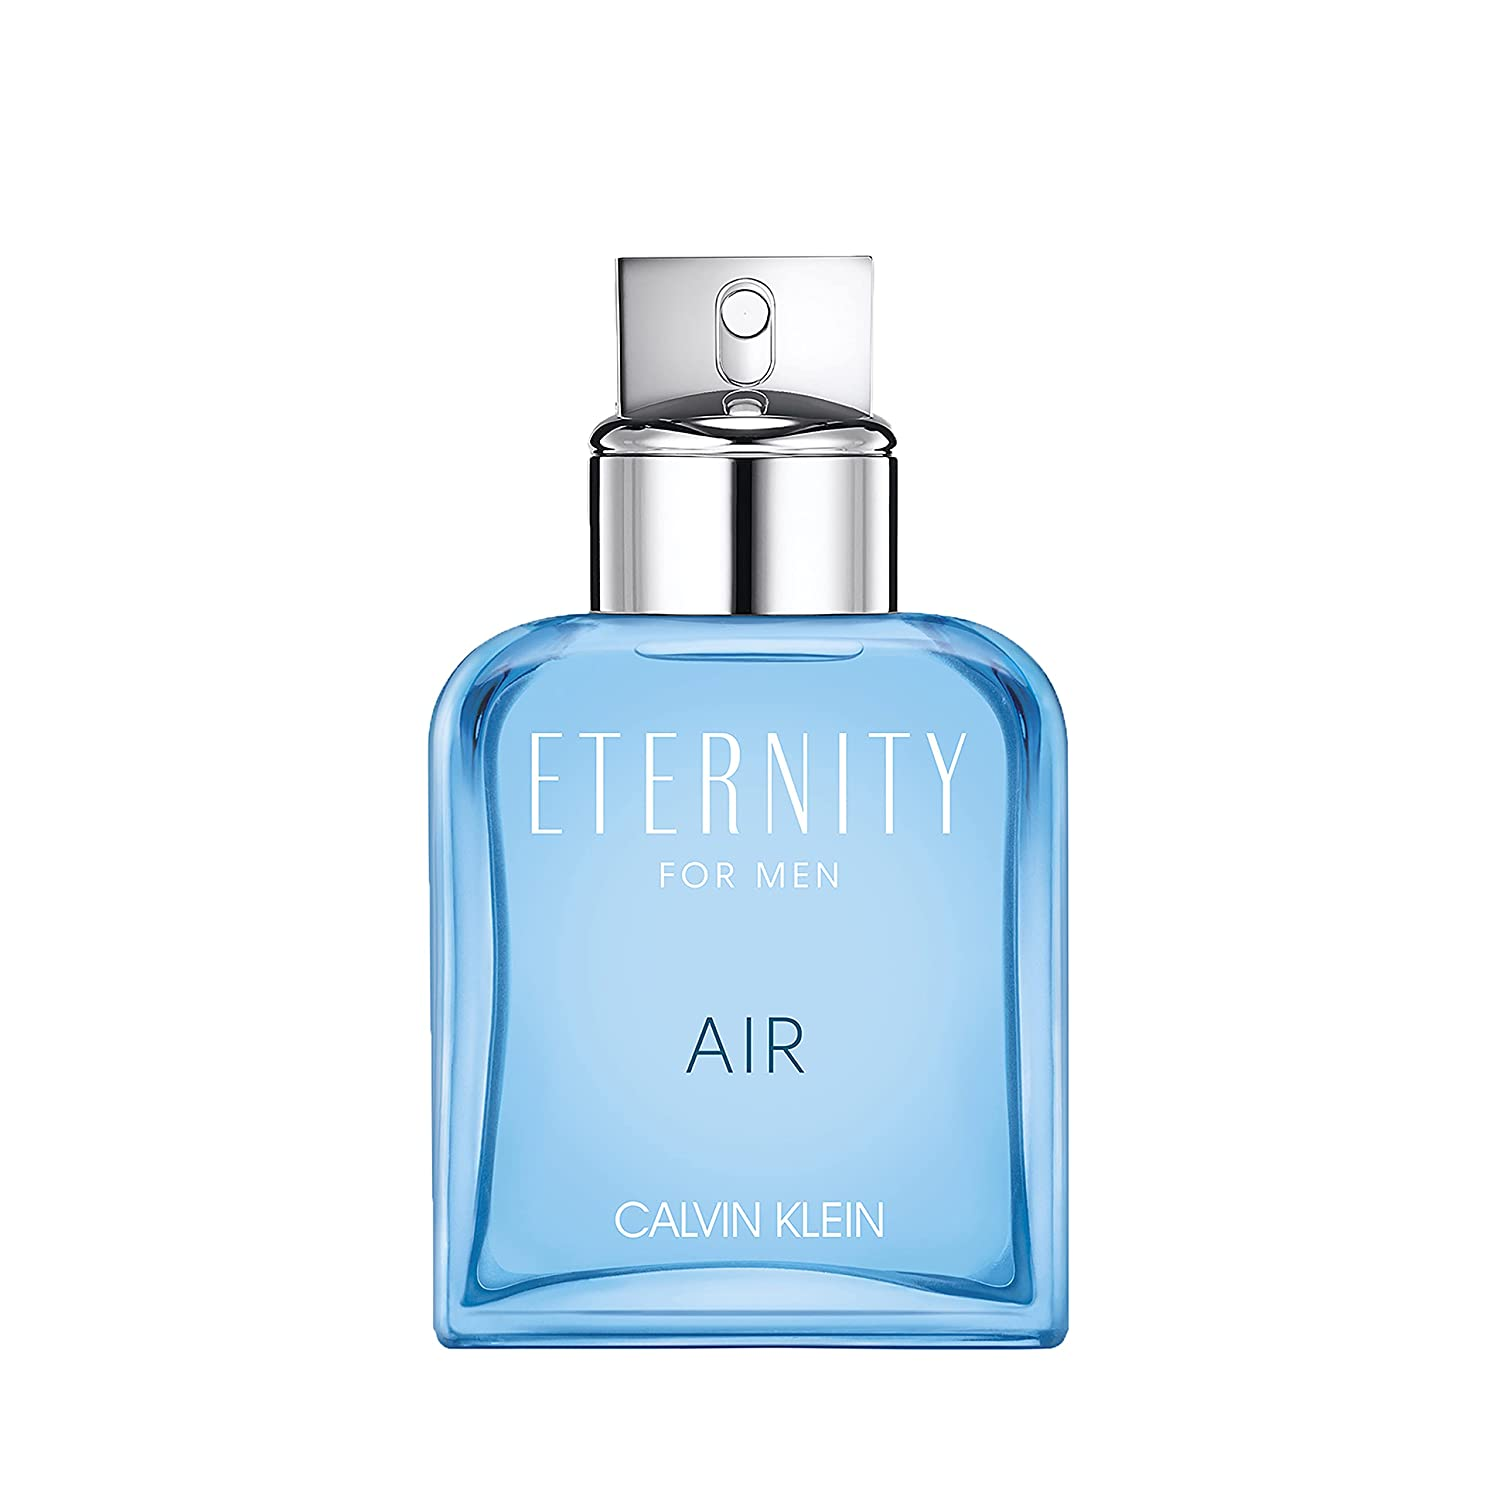 Calvin Klein Eternity Air Eau De Toilette For Men 3 4 Fl Oz Tommy Hilfiger Premium Beauty